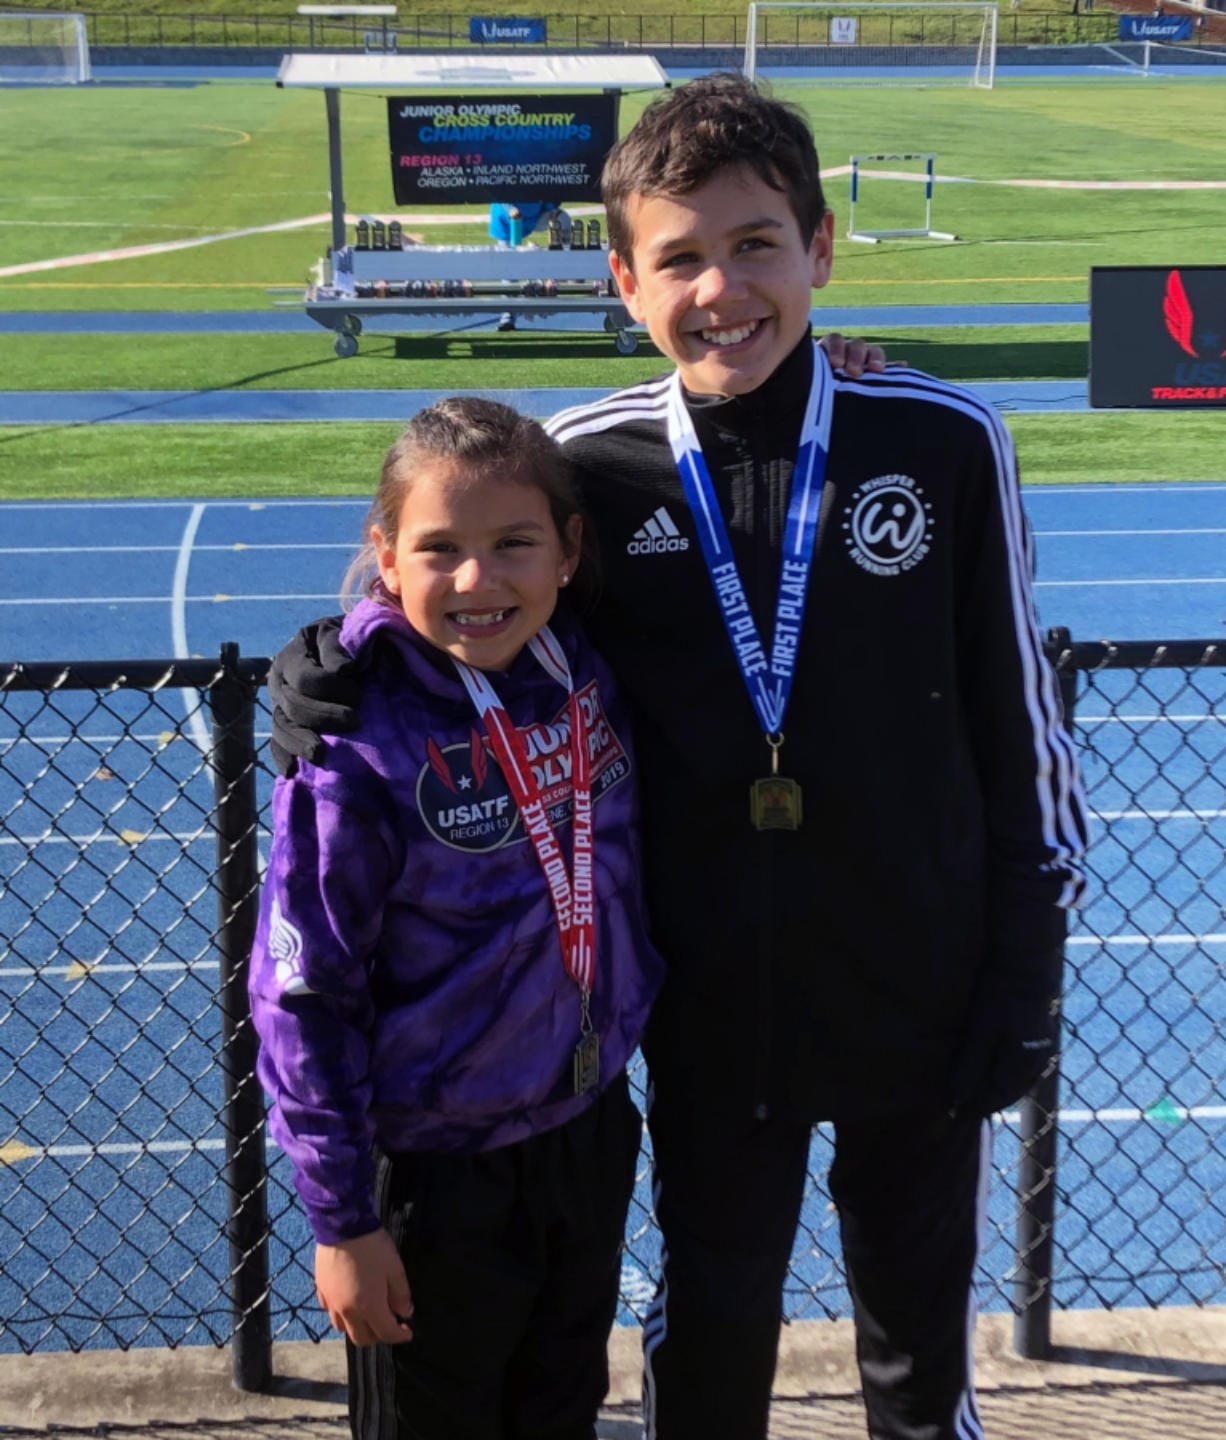 Sofia Soto, a Harney Elementary School student, and Sam Soto, a student at Gaiser Middle School, qualified for Junior Olympics cross country nationals on Saturday, Nov. 23, 2019, at Eugene, Ore. The compete for Whisper Running club.